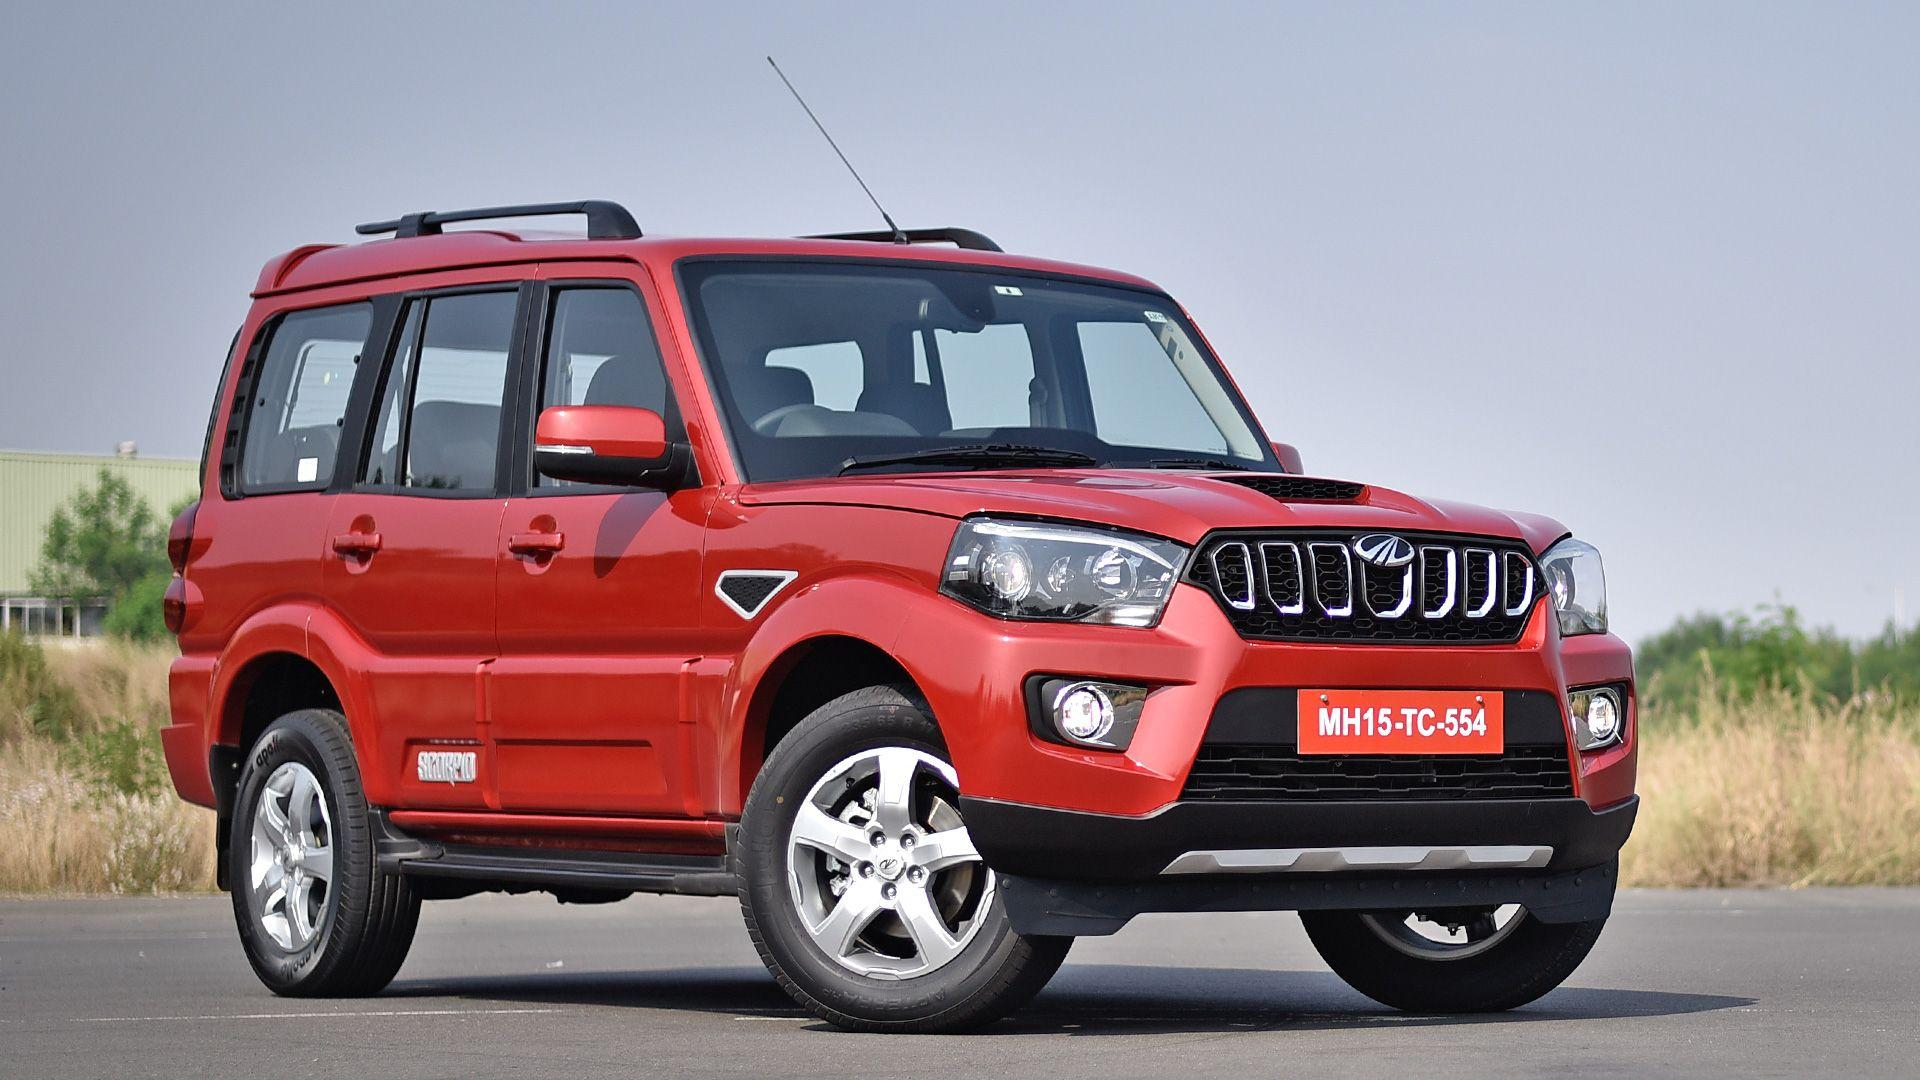 Mahindra Scorpio HD Wallpapers - Wallpaper Cave